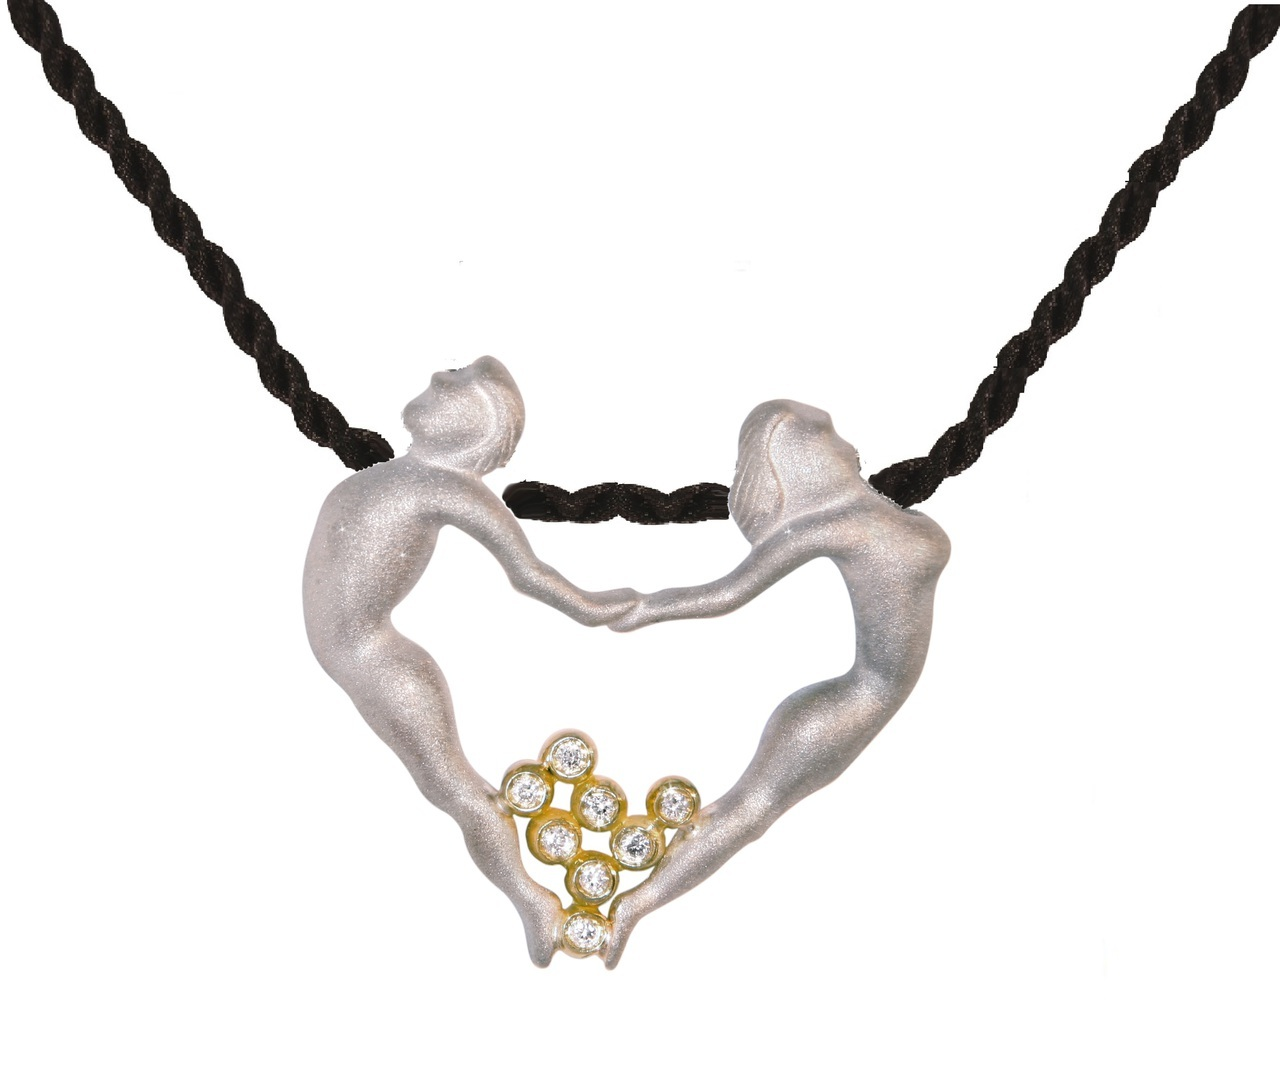 Couple Heart Necklace - 18K with diamond dots in sterling silver heart